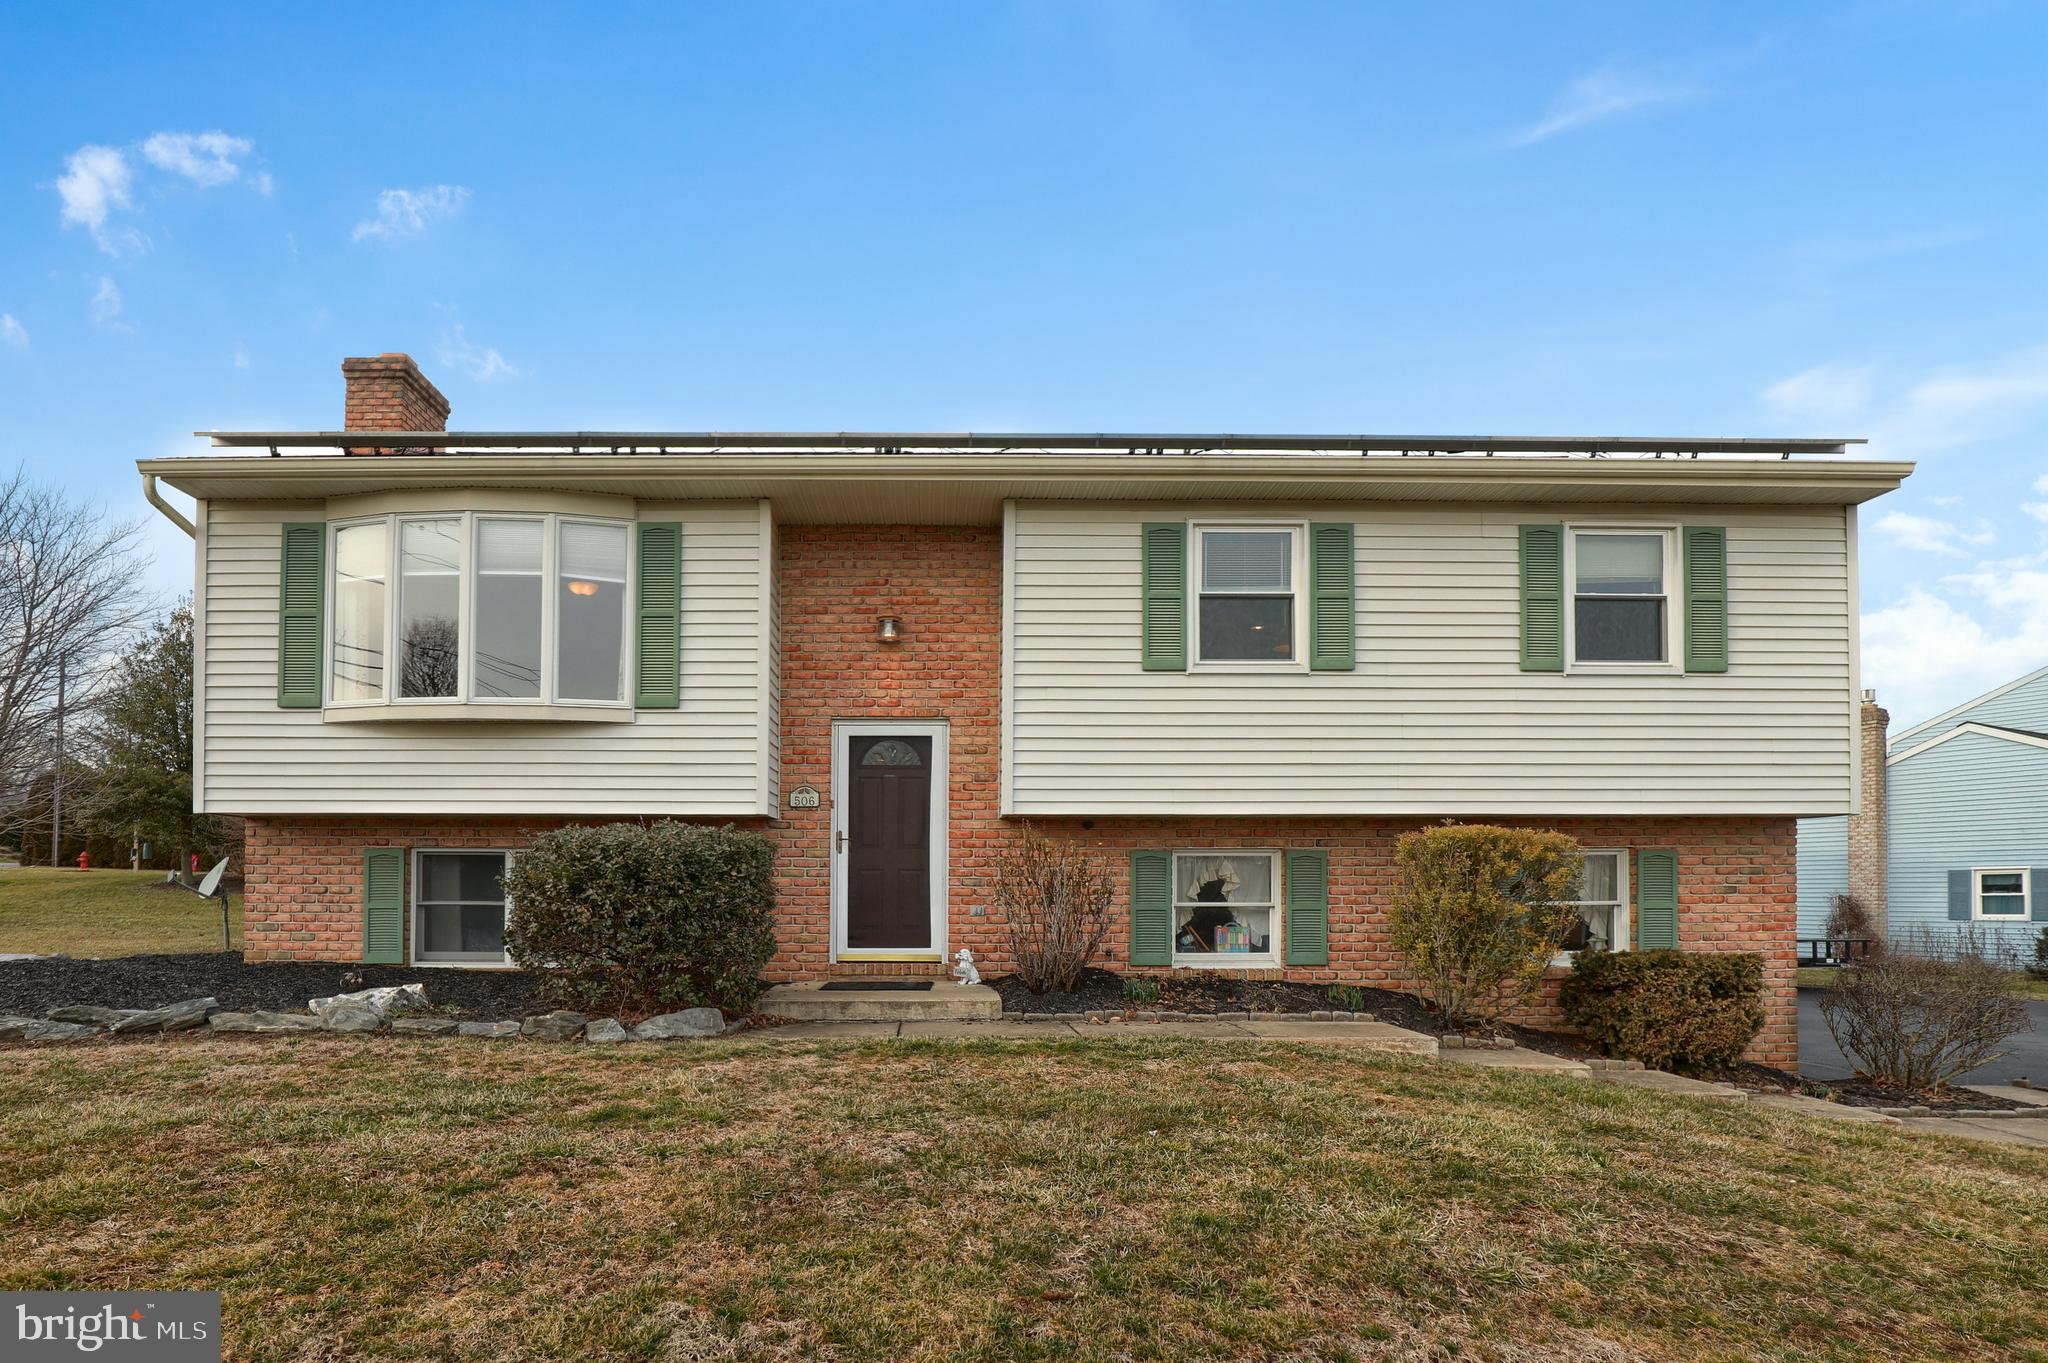 506 EDGEMONT DRIVE, WILLOW STREET, PA 17584